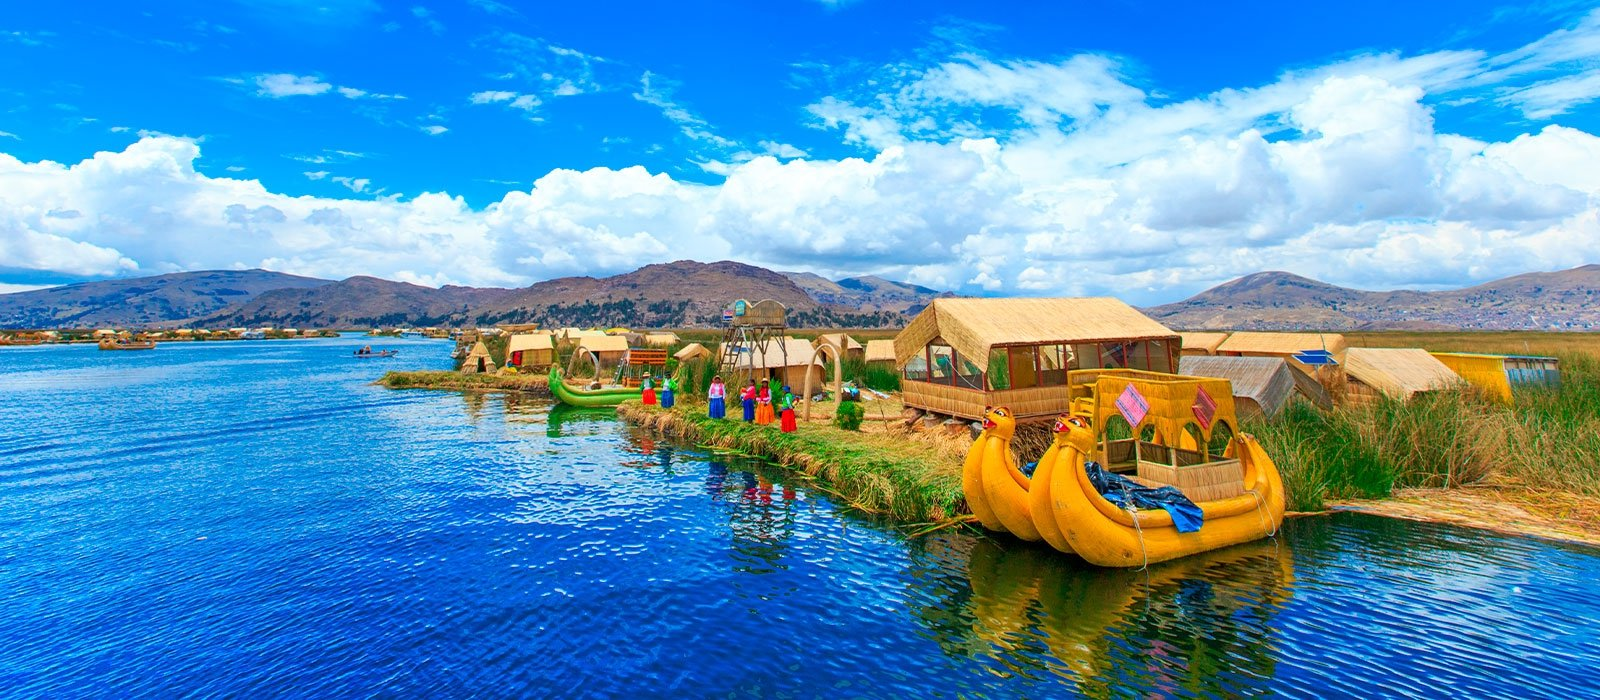 Floating Islands of the Uros and Taquile